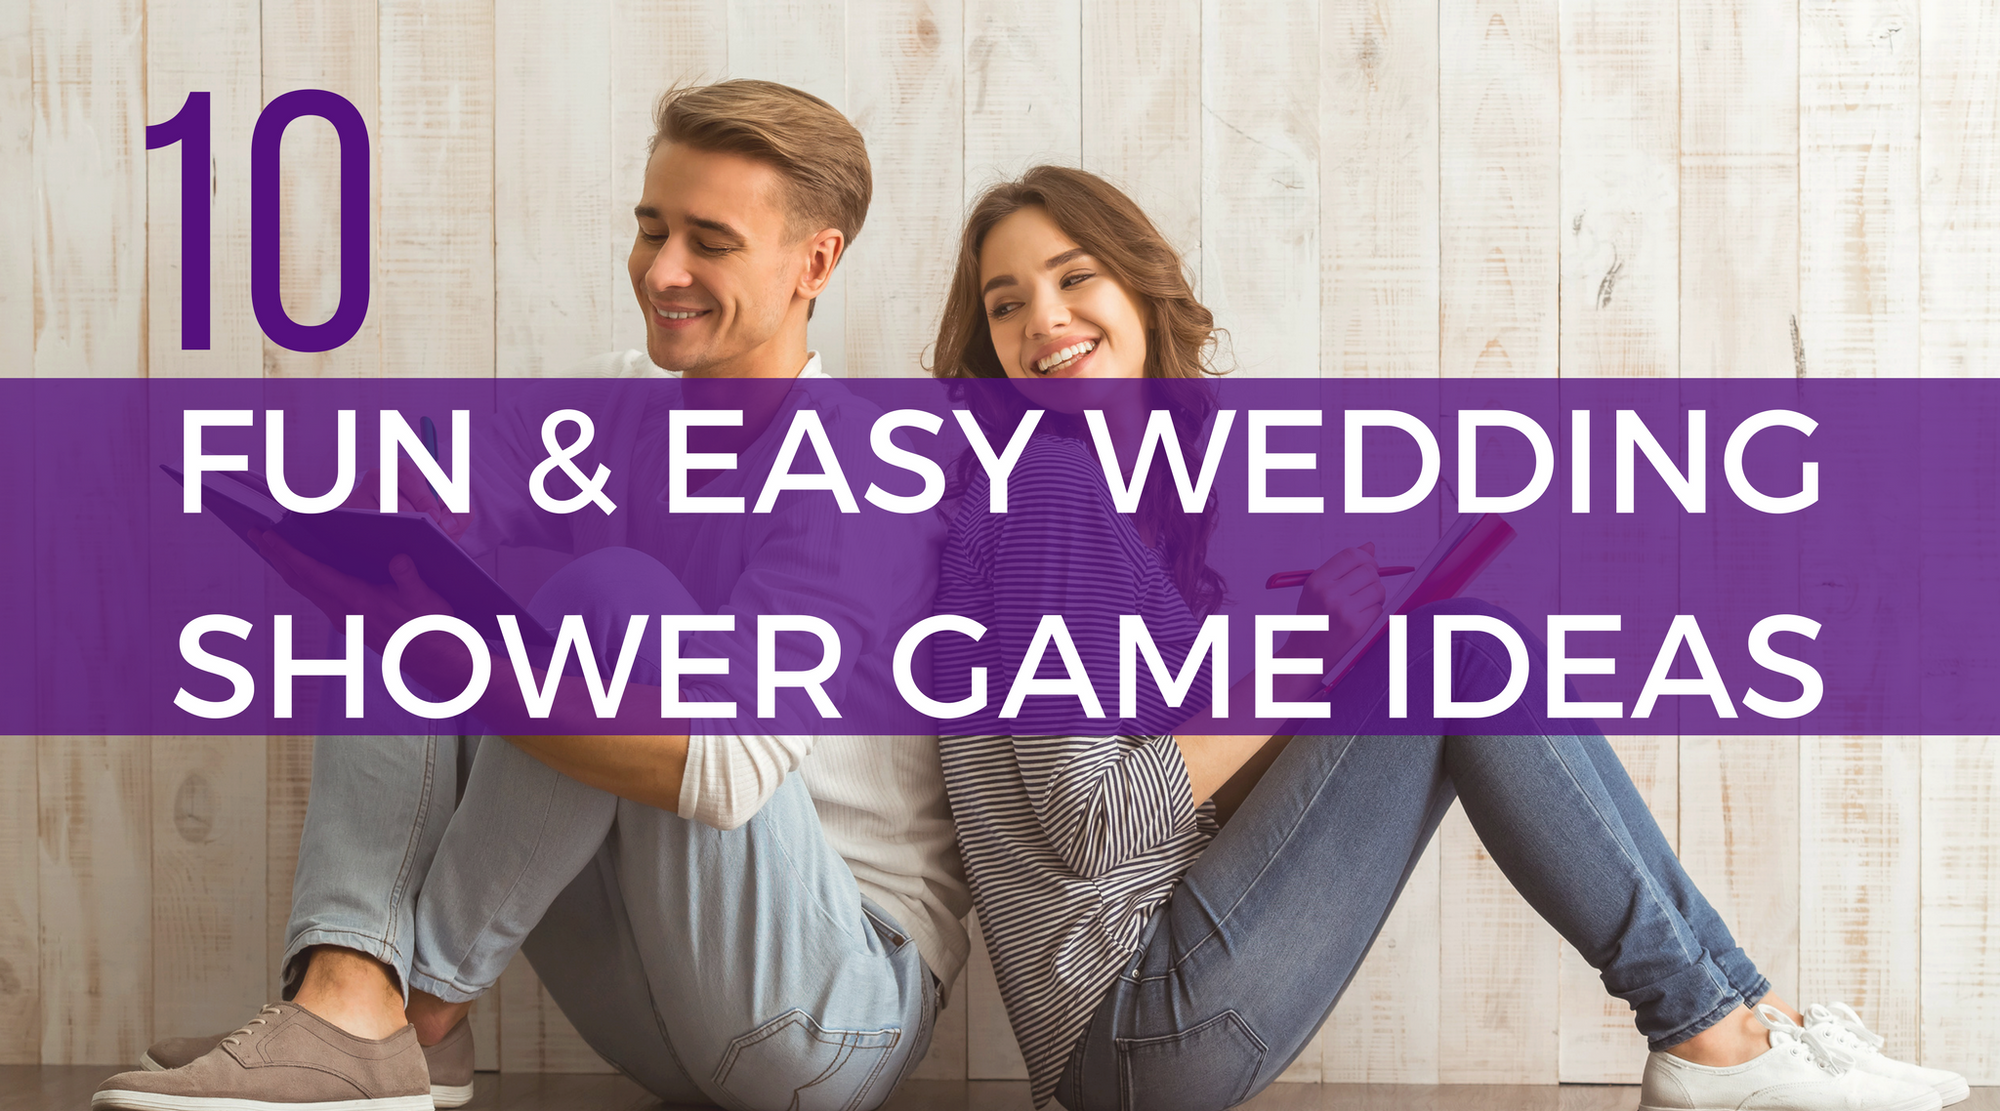 How to Host a Coed Wedding Shower: 10 Fun Game Ideas | Planning a wedding shower can be a tricky task. Here are the top 10 best interactive wedding shower game ideas you can use to add fun and lasting memories to your next bridal shower.